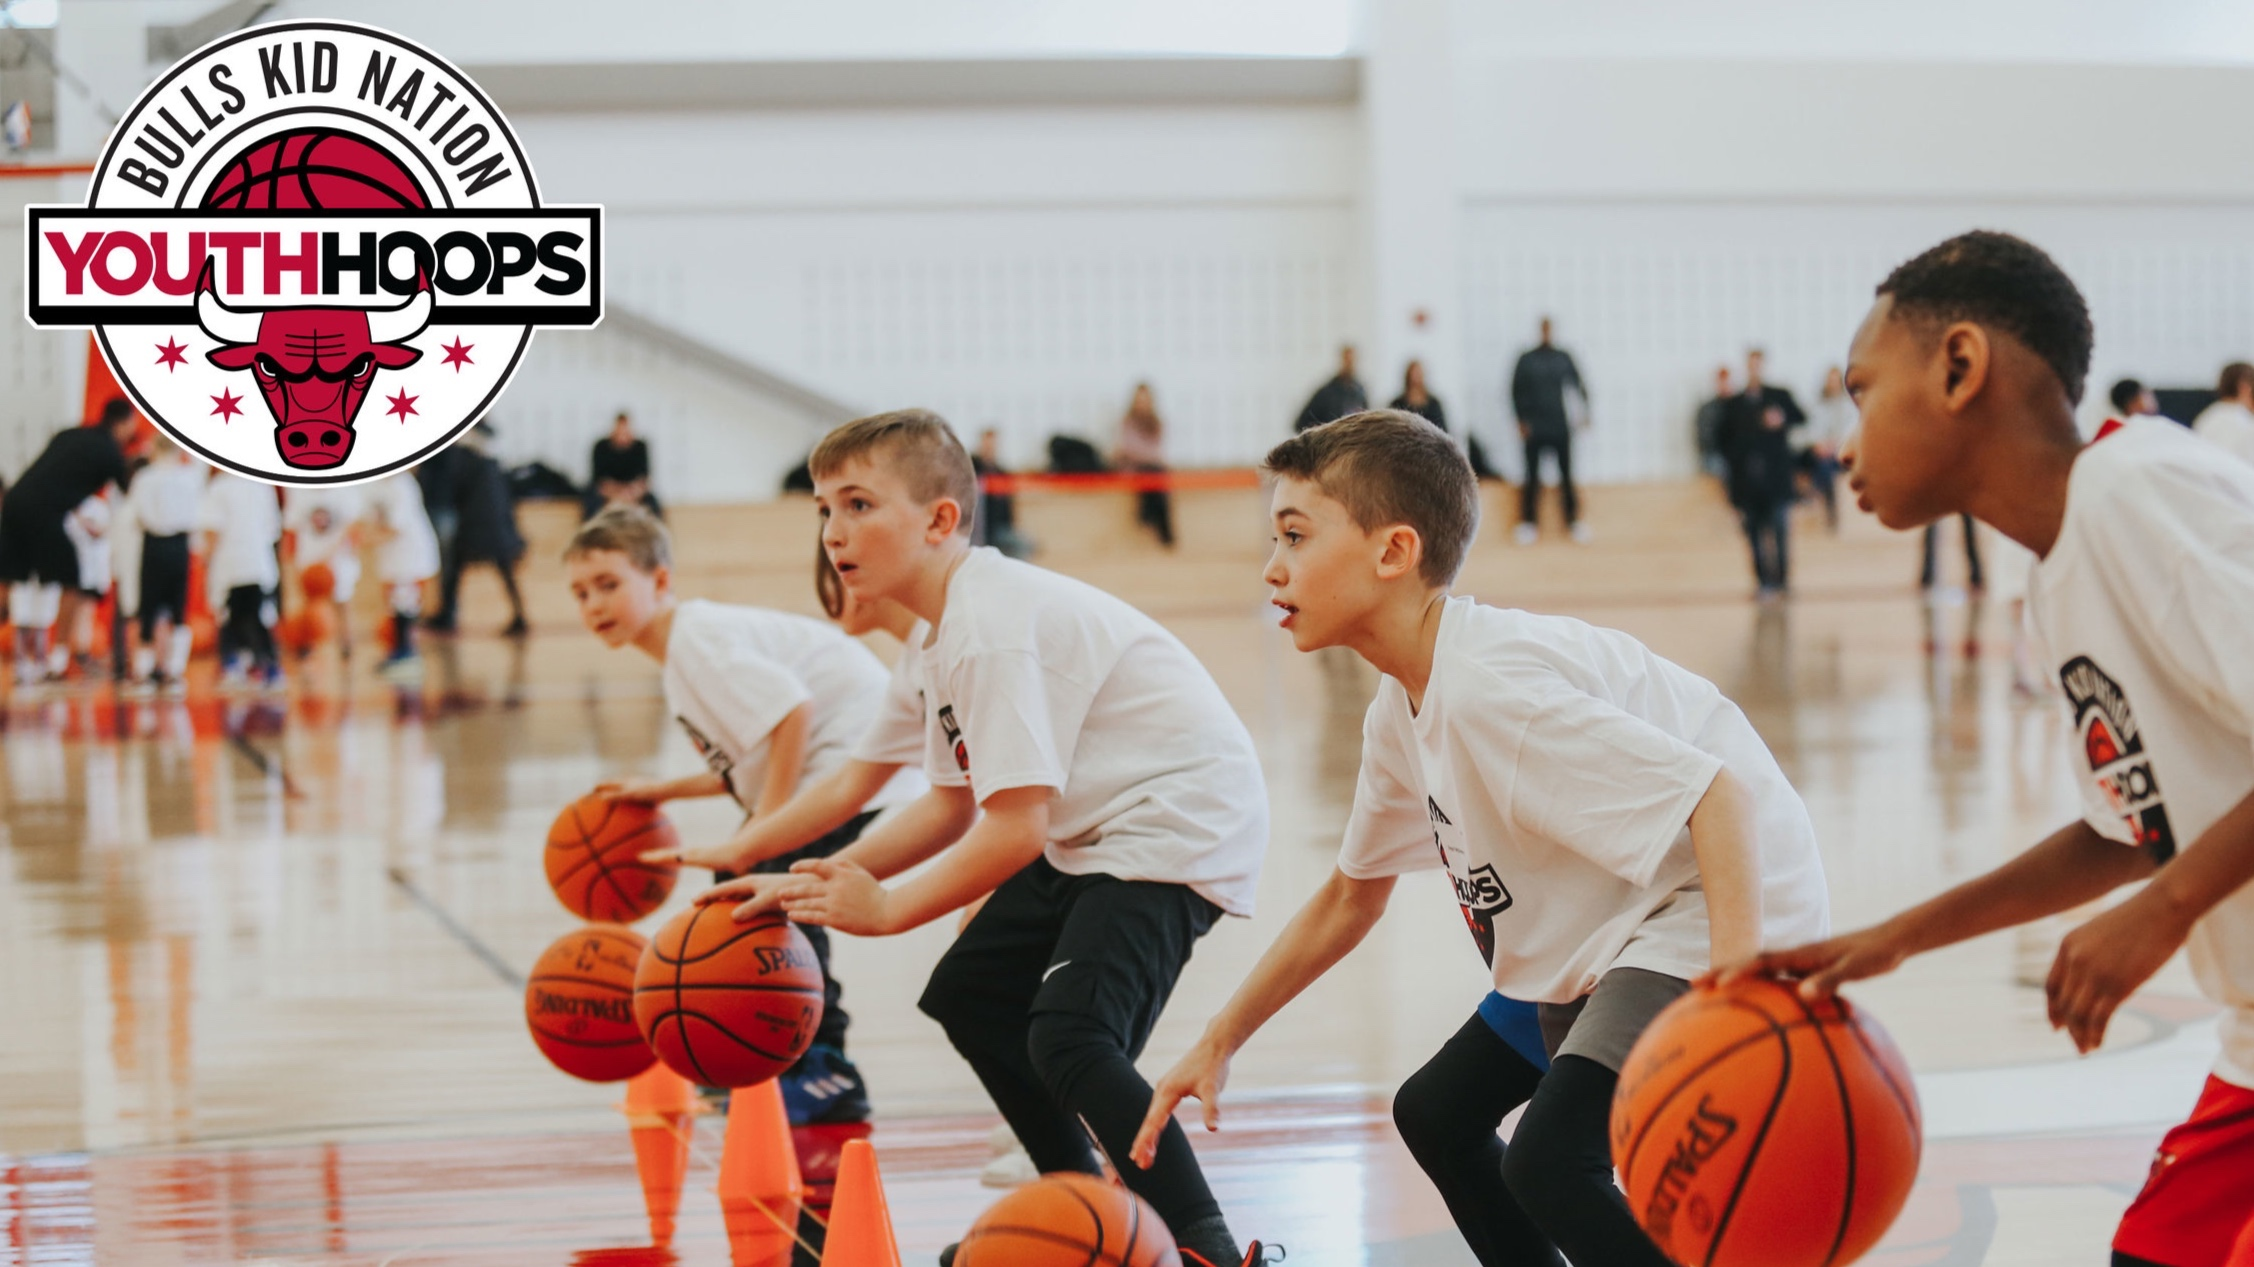 Bulls Kid Nation Youth Hoops -